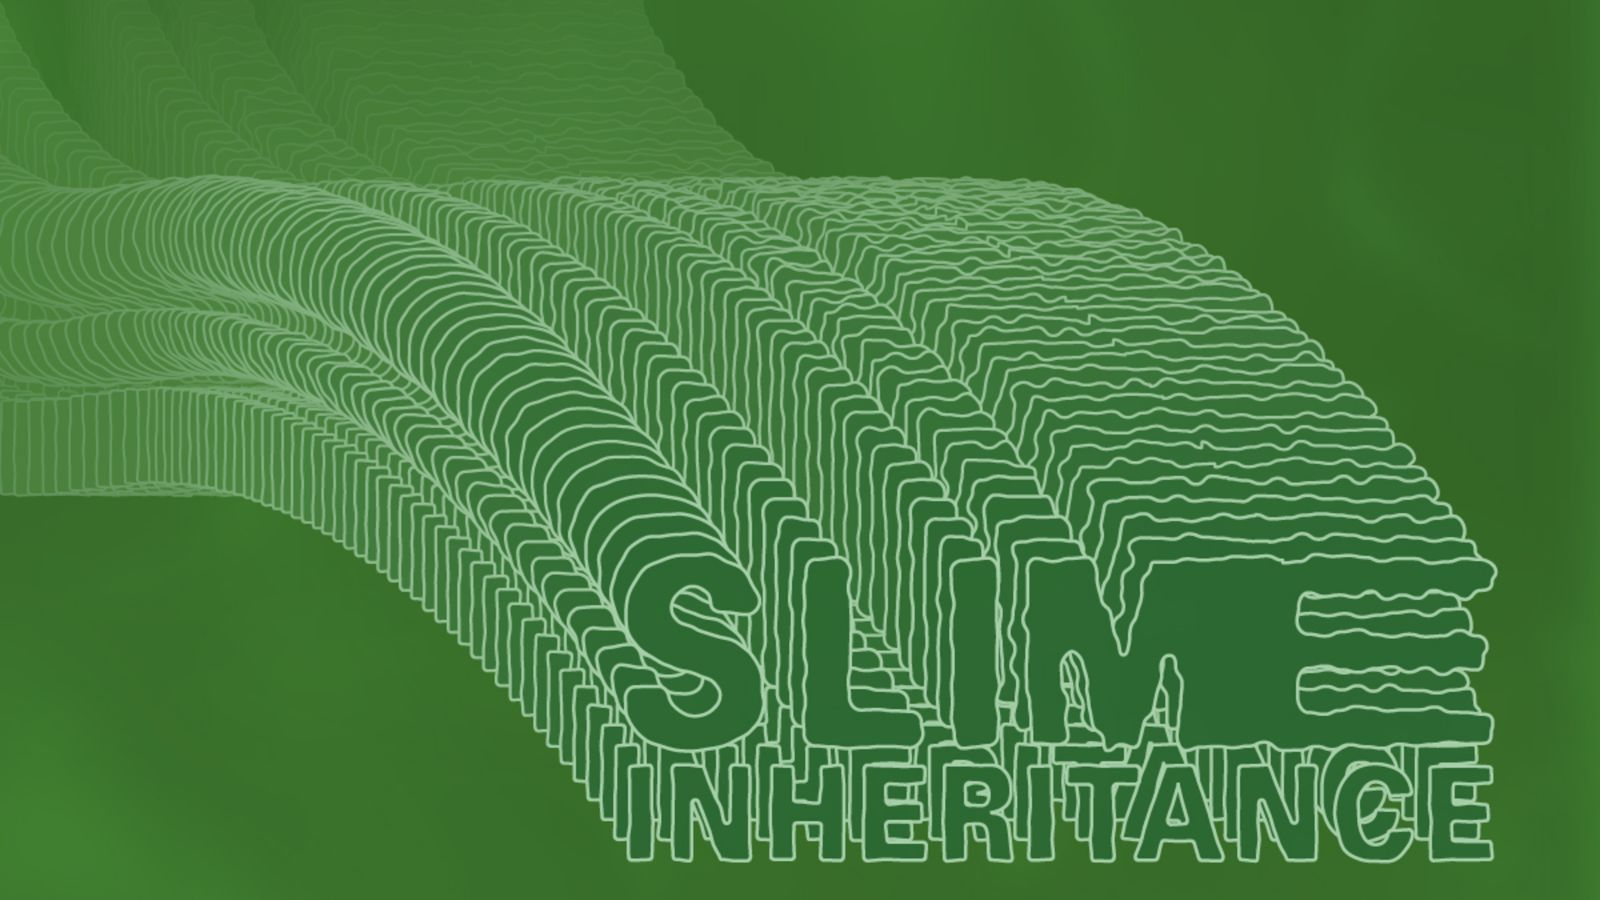 Green font saying Slime Inheritance